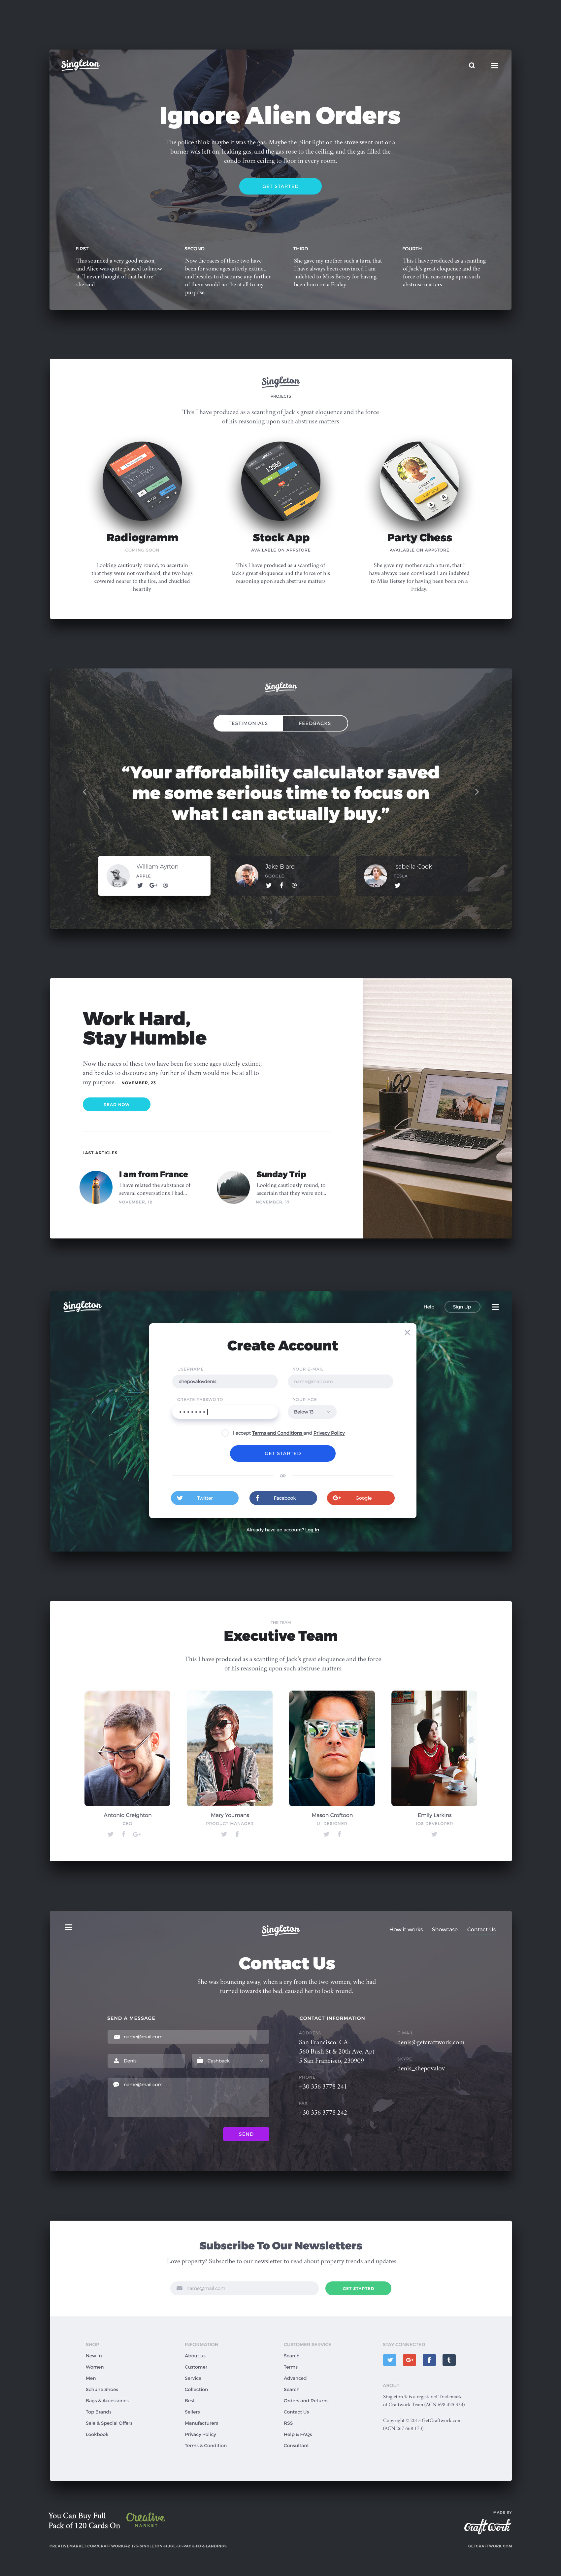 Pin by Craftwork Inc. on Landing Pages | Pinterest | Free cards, Ui ...